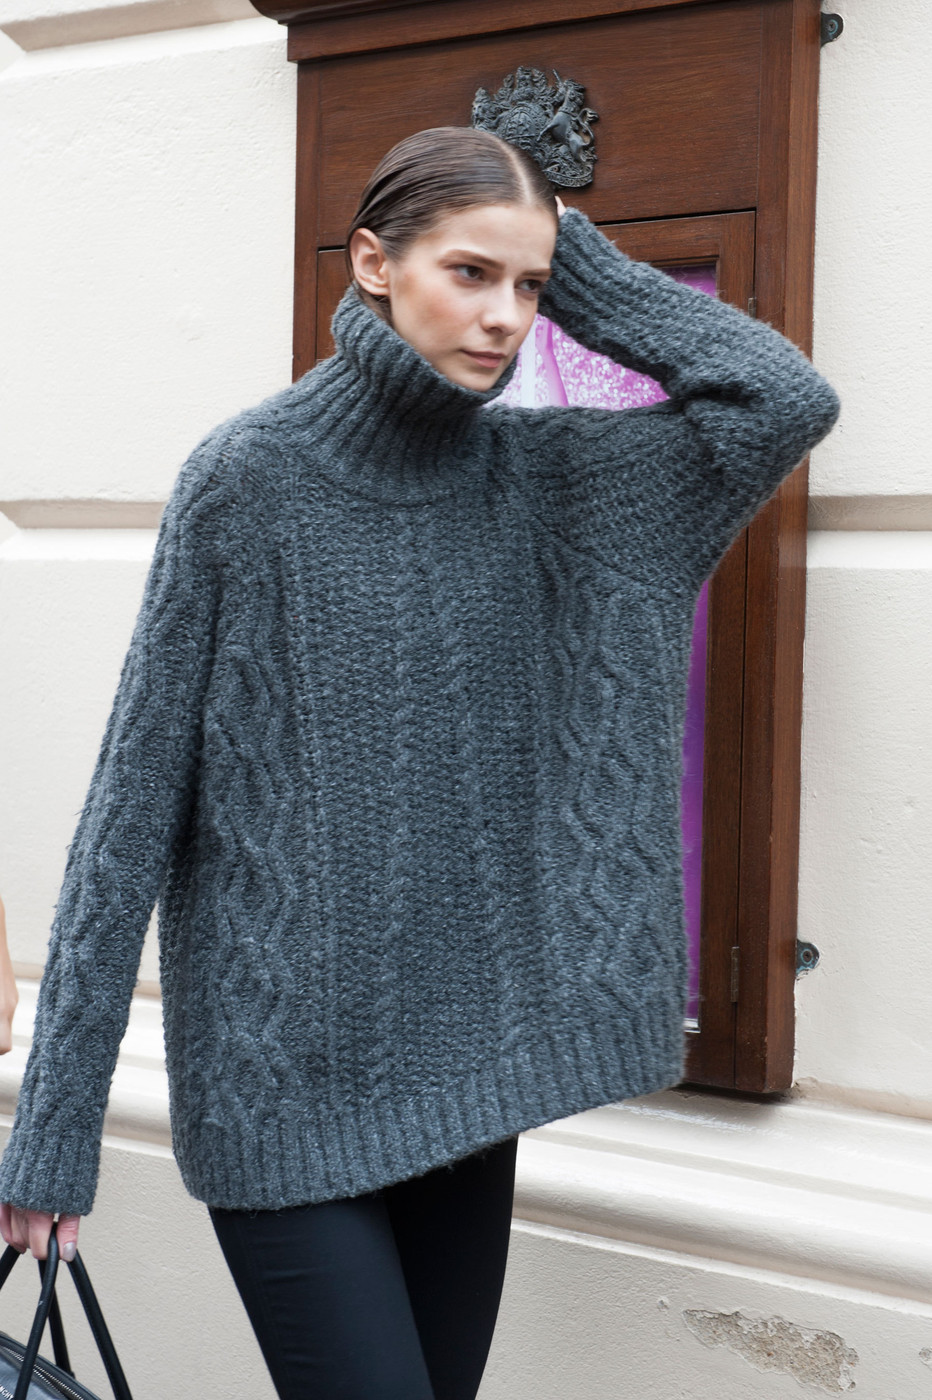 Cozy Coolness Best Street Style At London Fashion Week